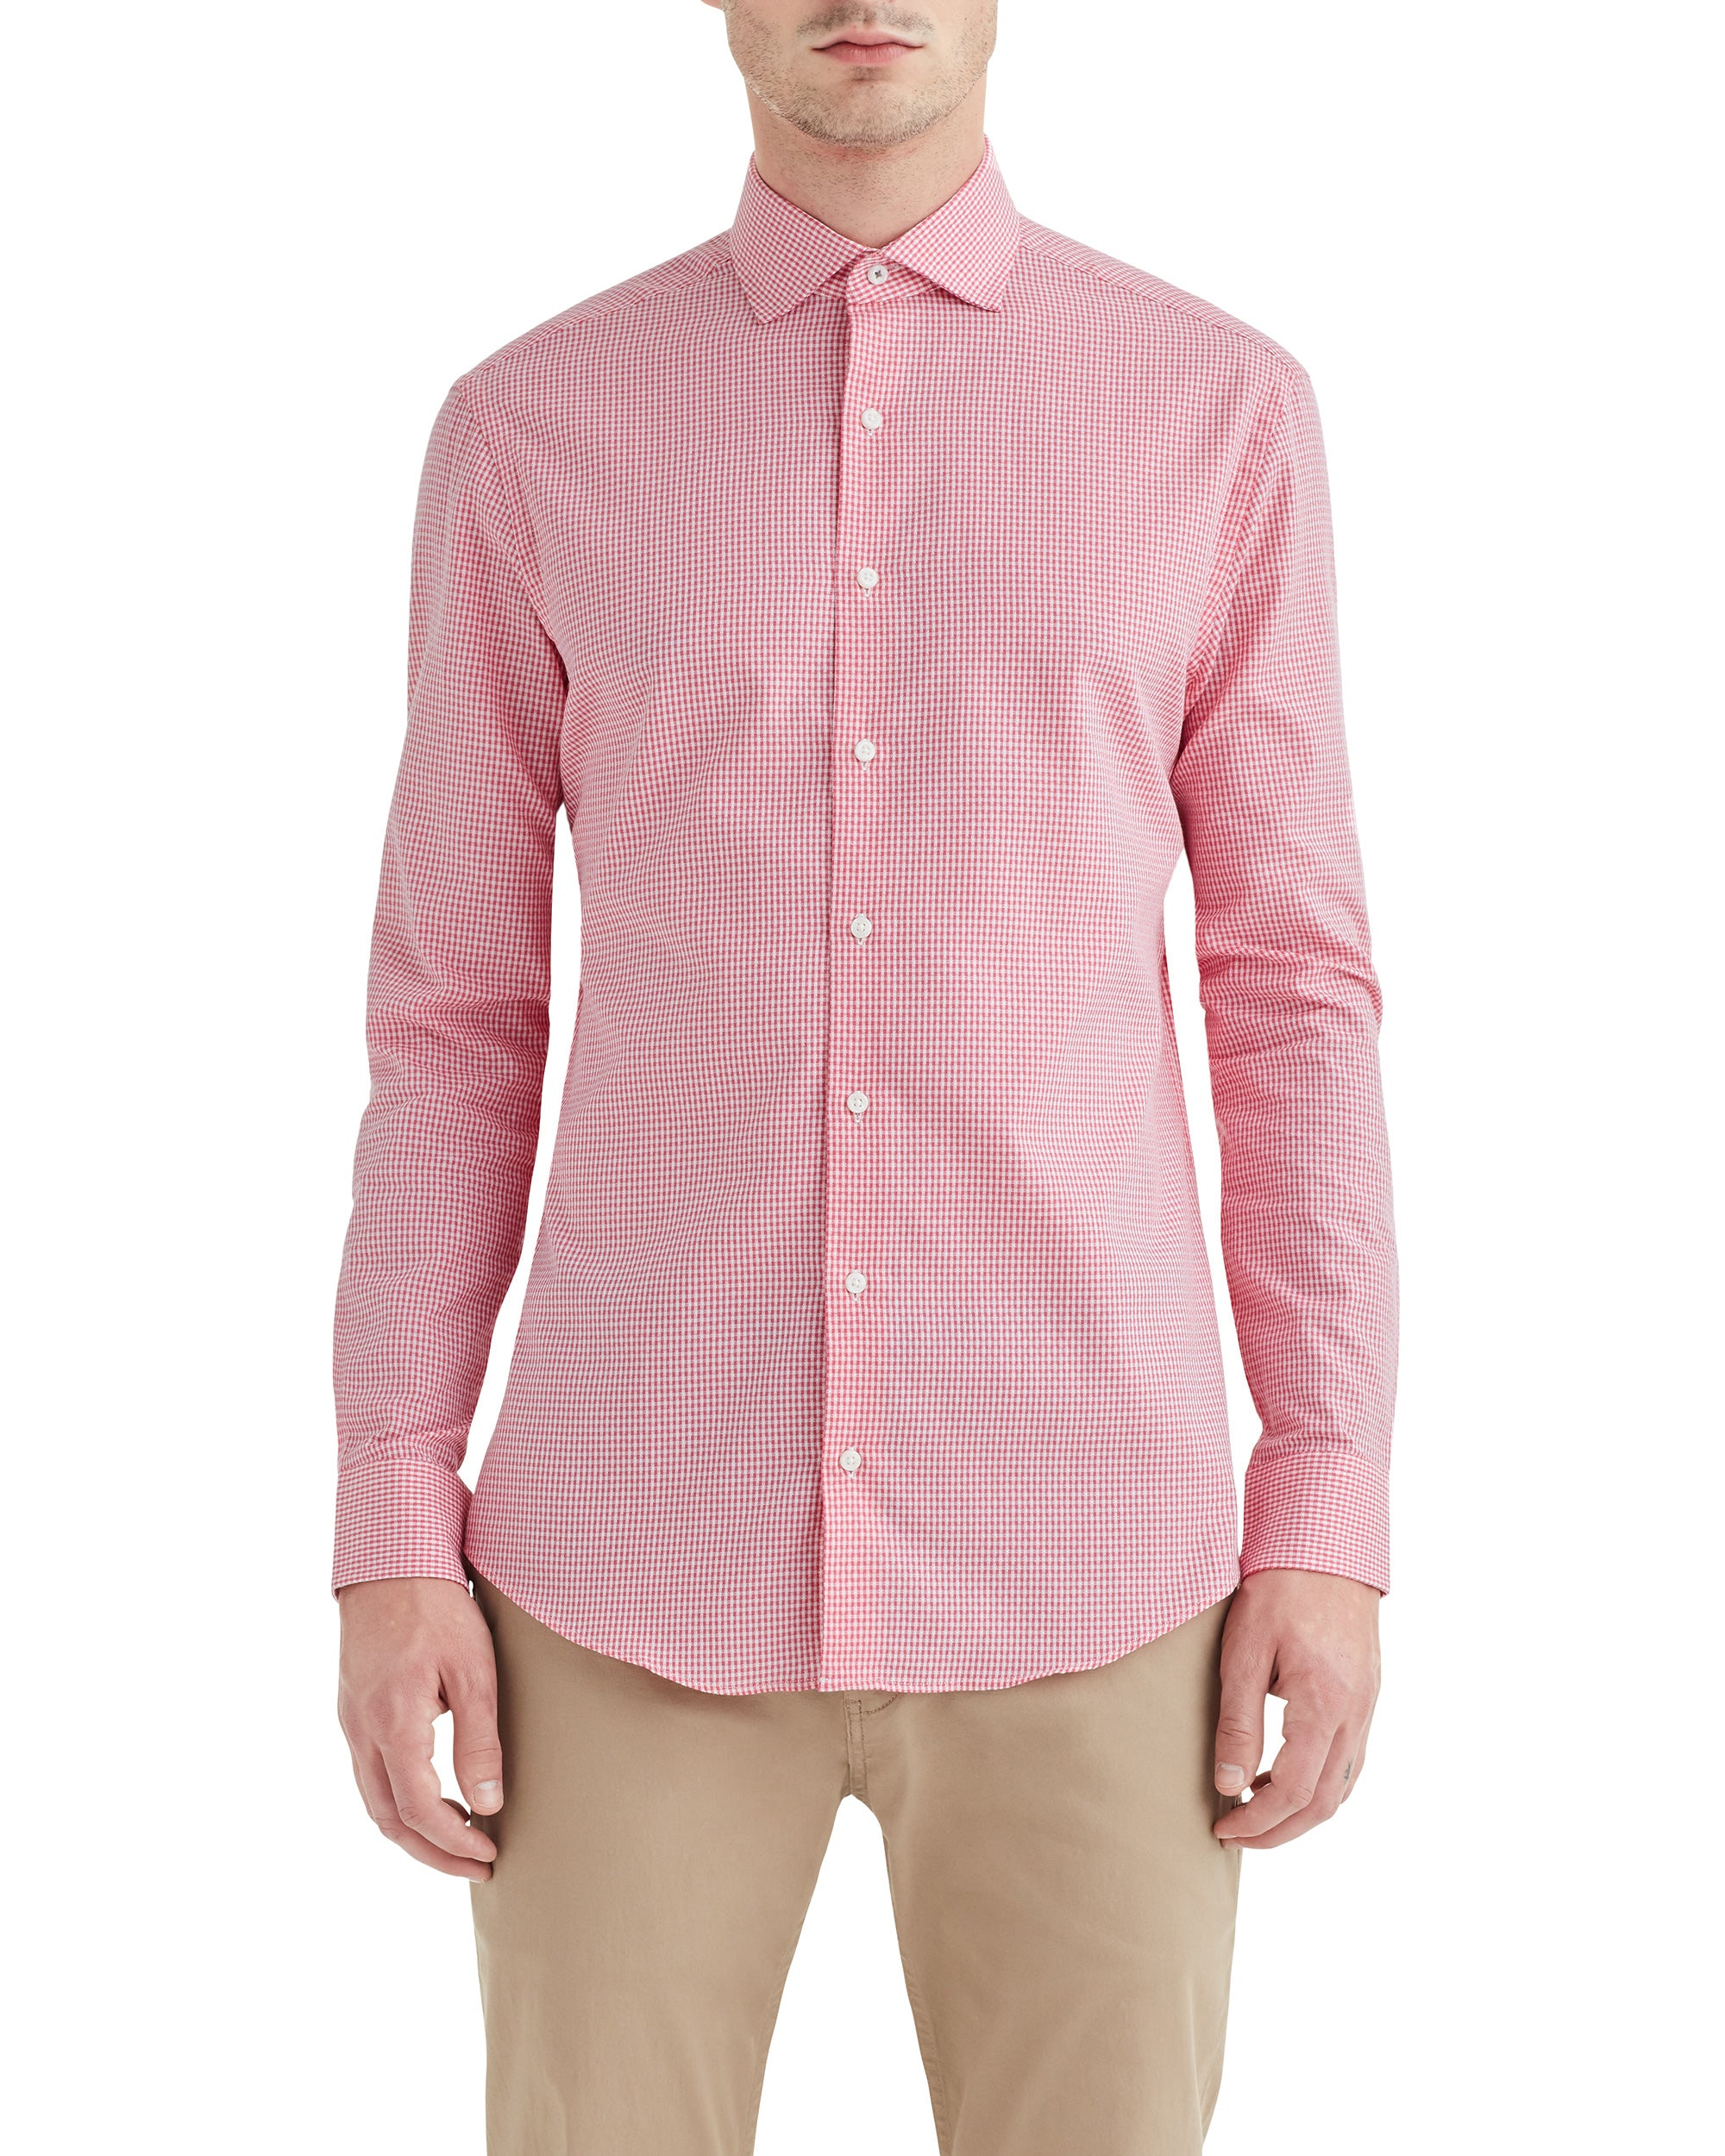 Coral Dobby Gingham Slim-Fit Dress Shirt